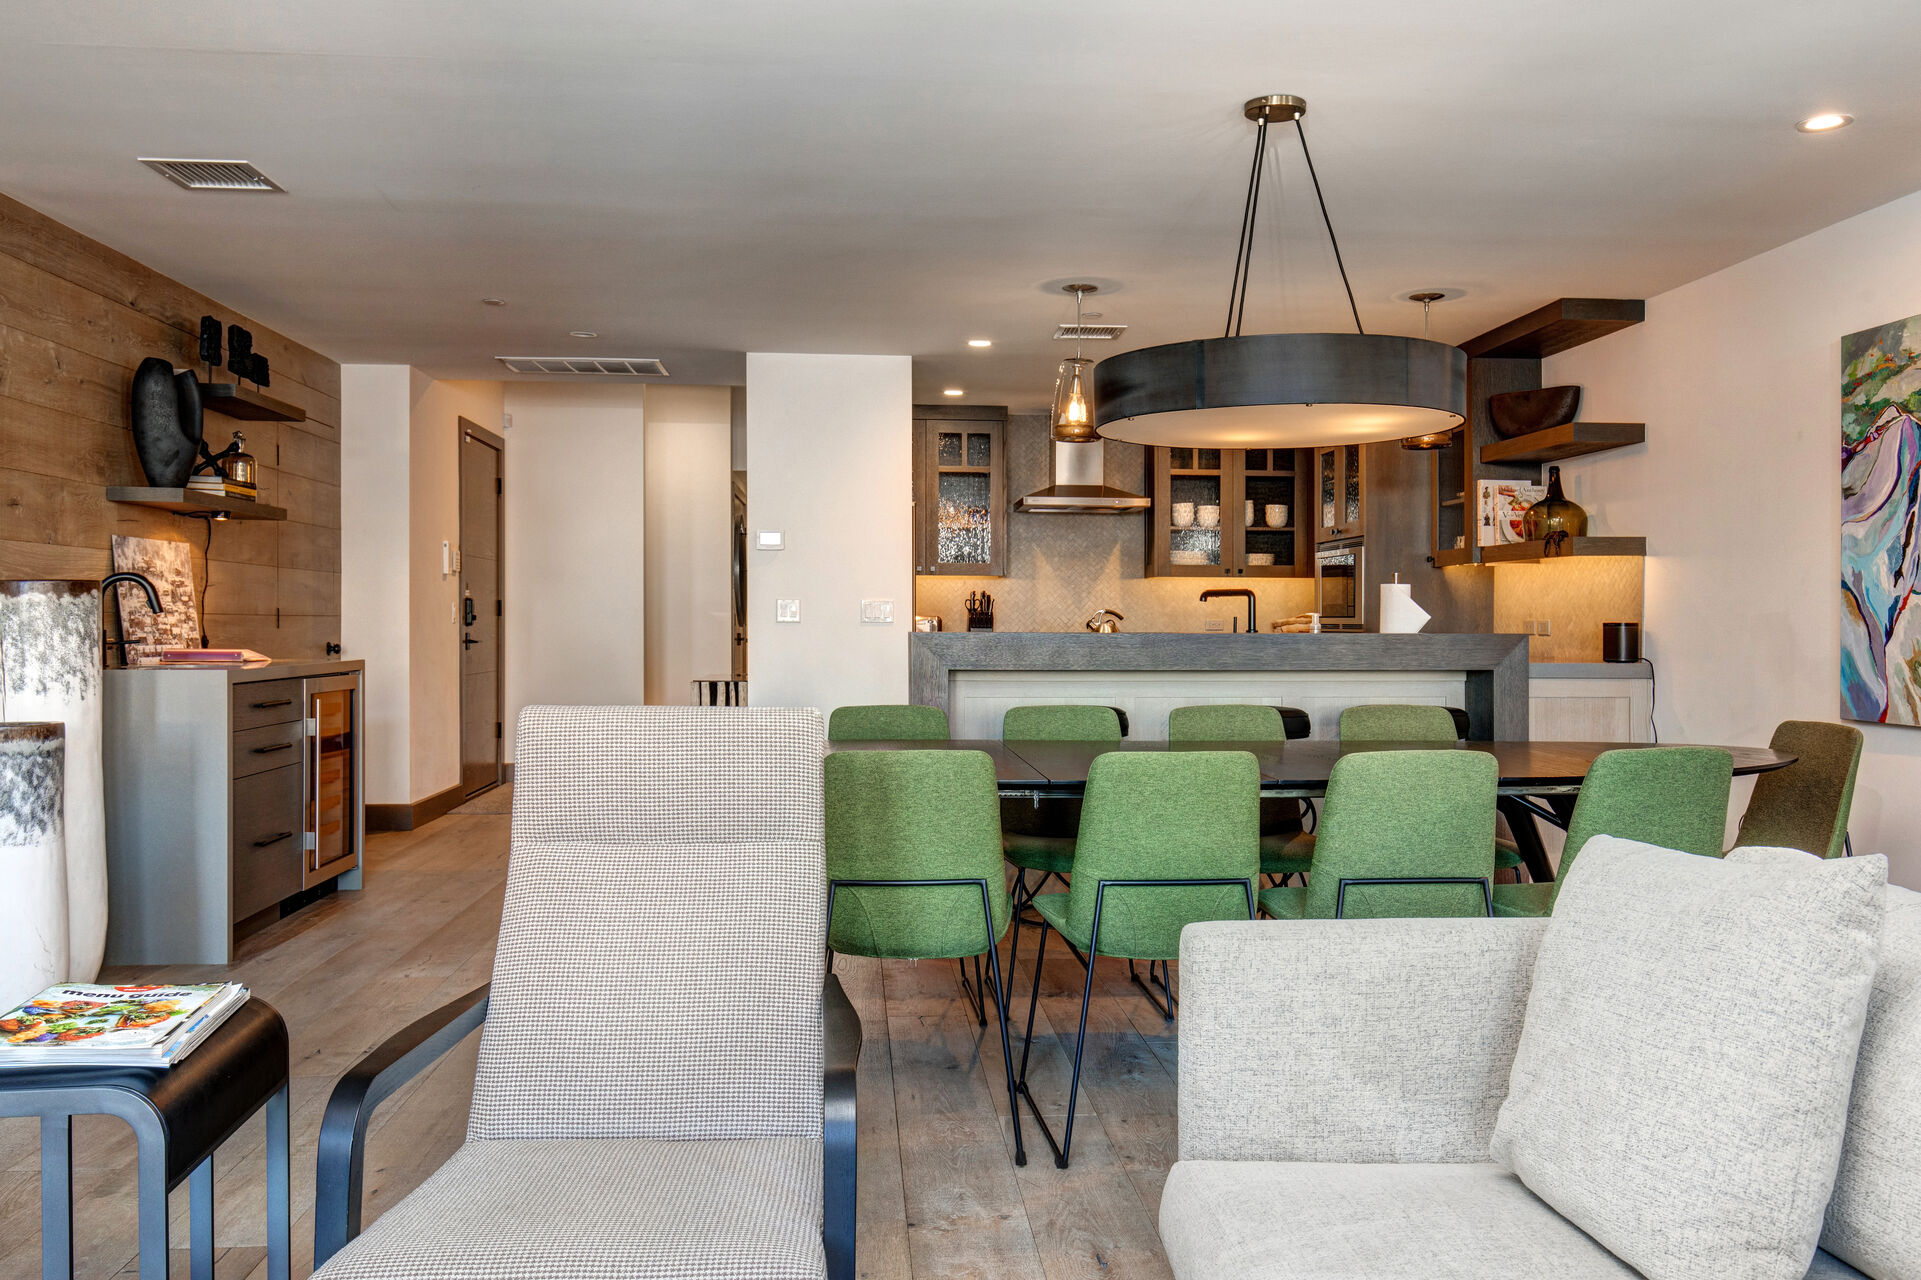 View of Dining Area, Kitchen Bar Seating and Wet Bar with Wine Fridge